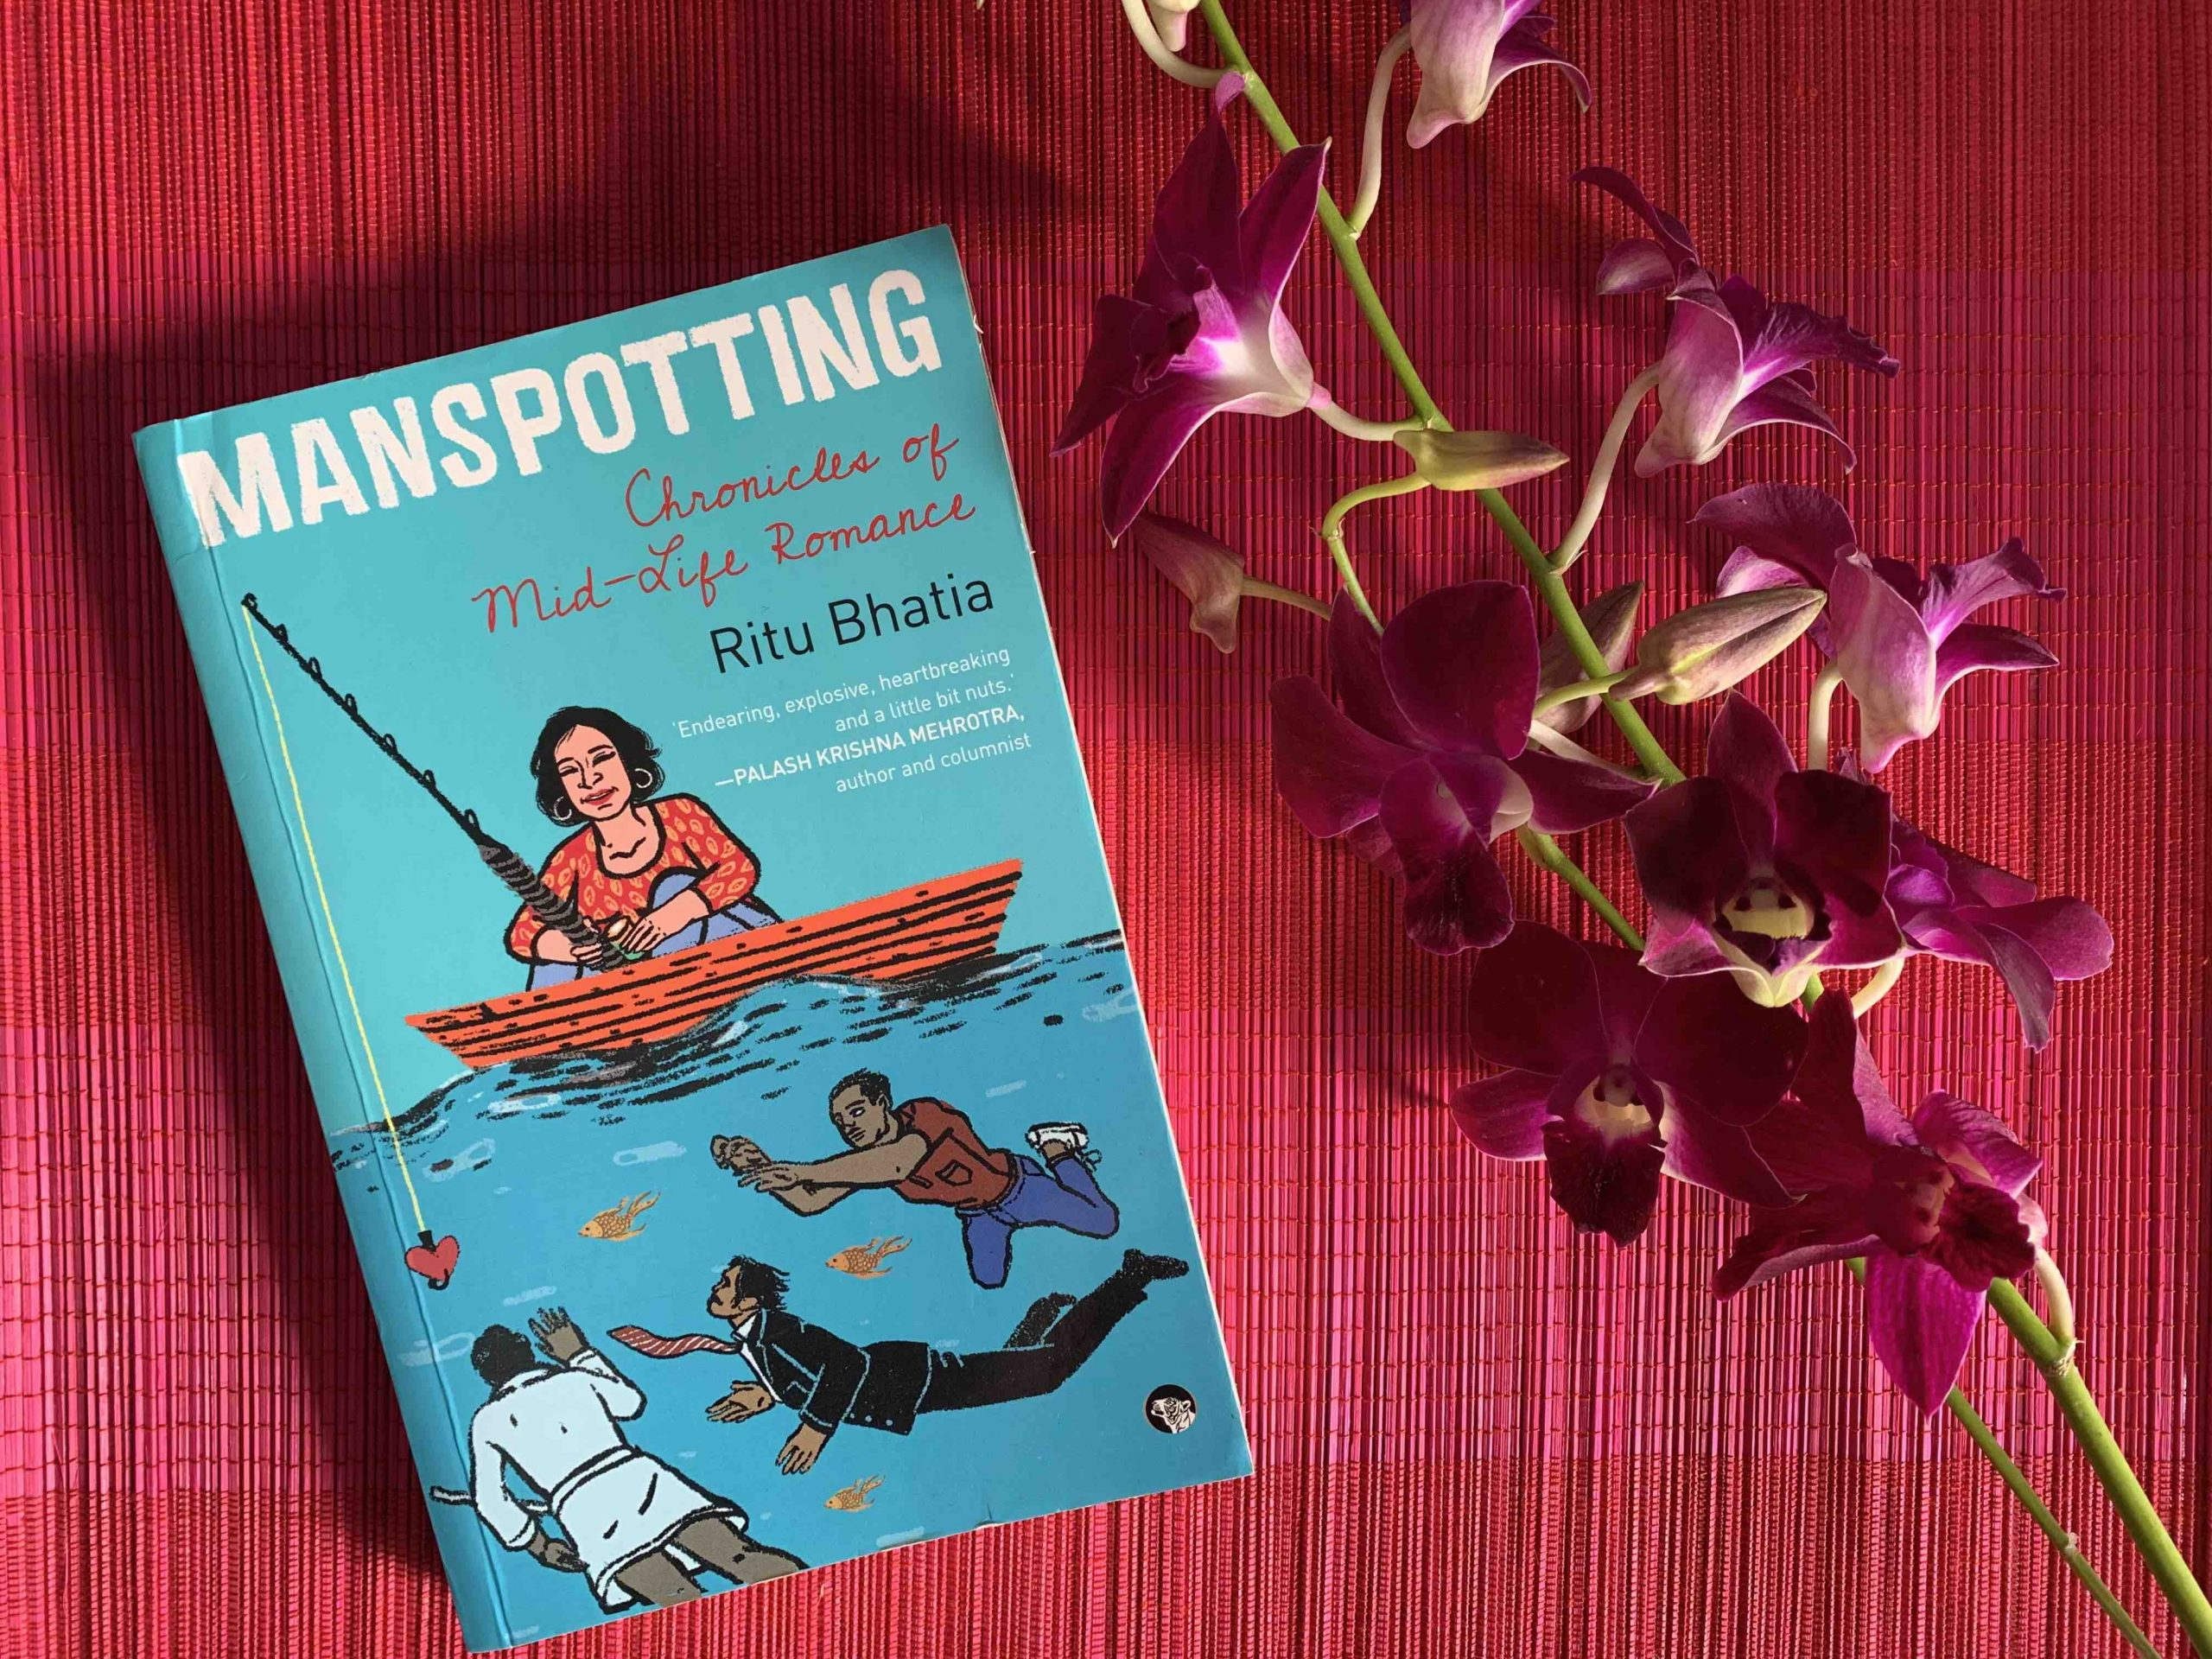 Manspotting book cover